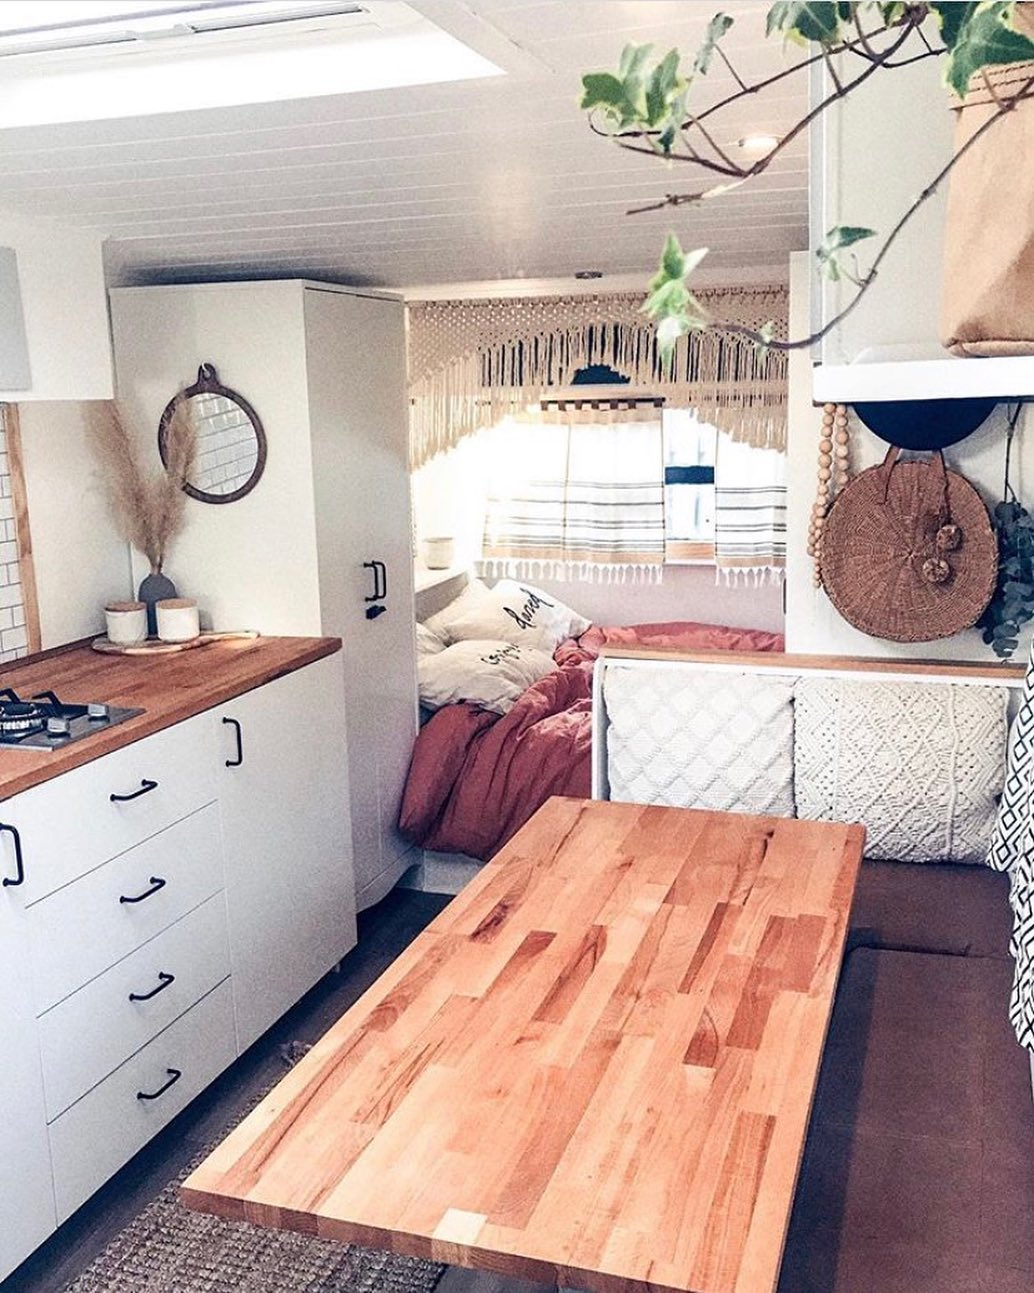 Interior of a renovated travel trailer showing the dining area and kitchen